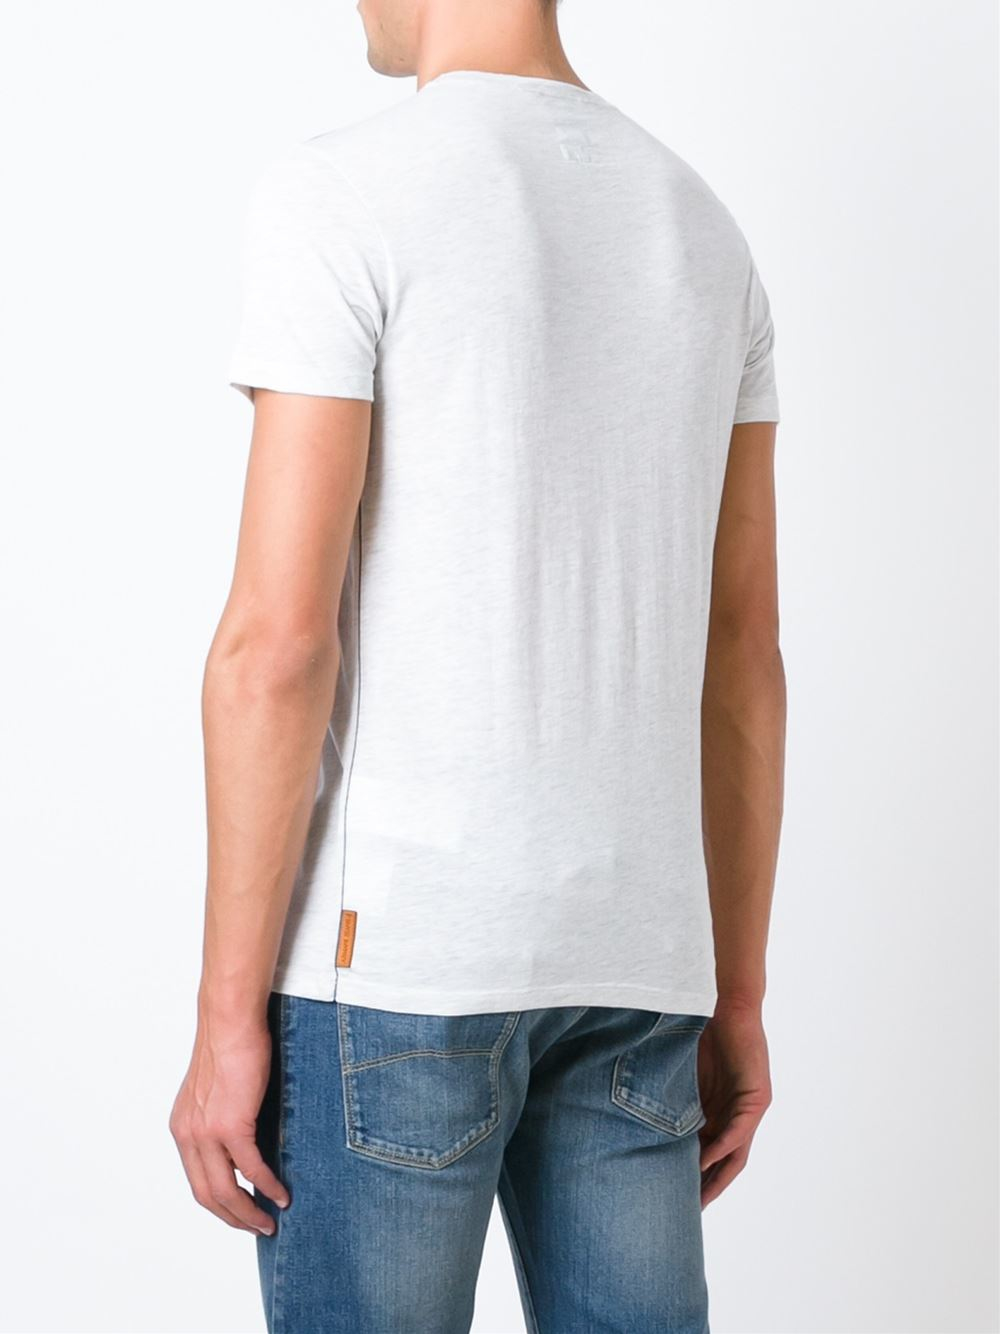 Lyst - Armani Jeans Printed T-shirt in Gray for Men